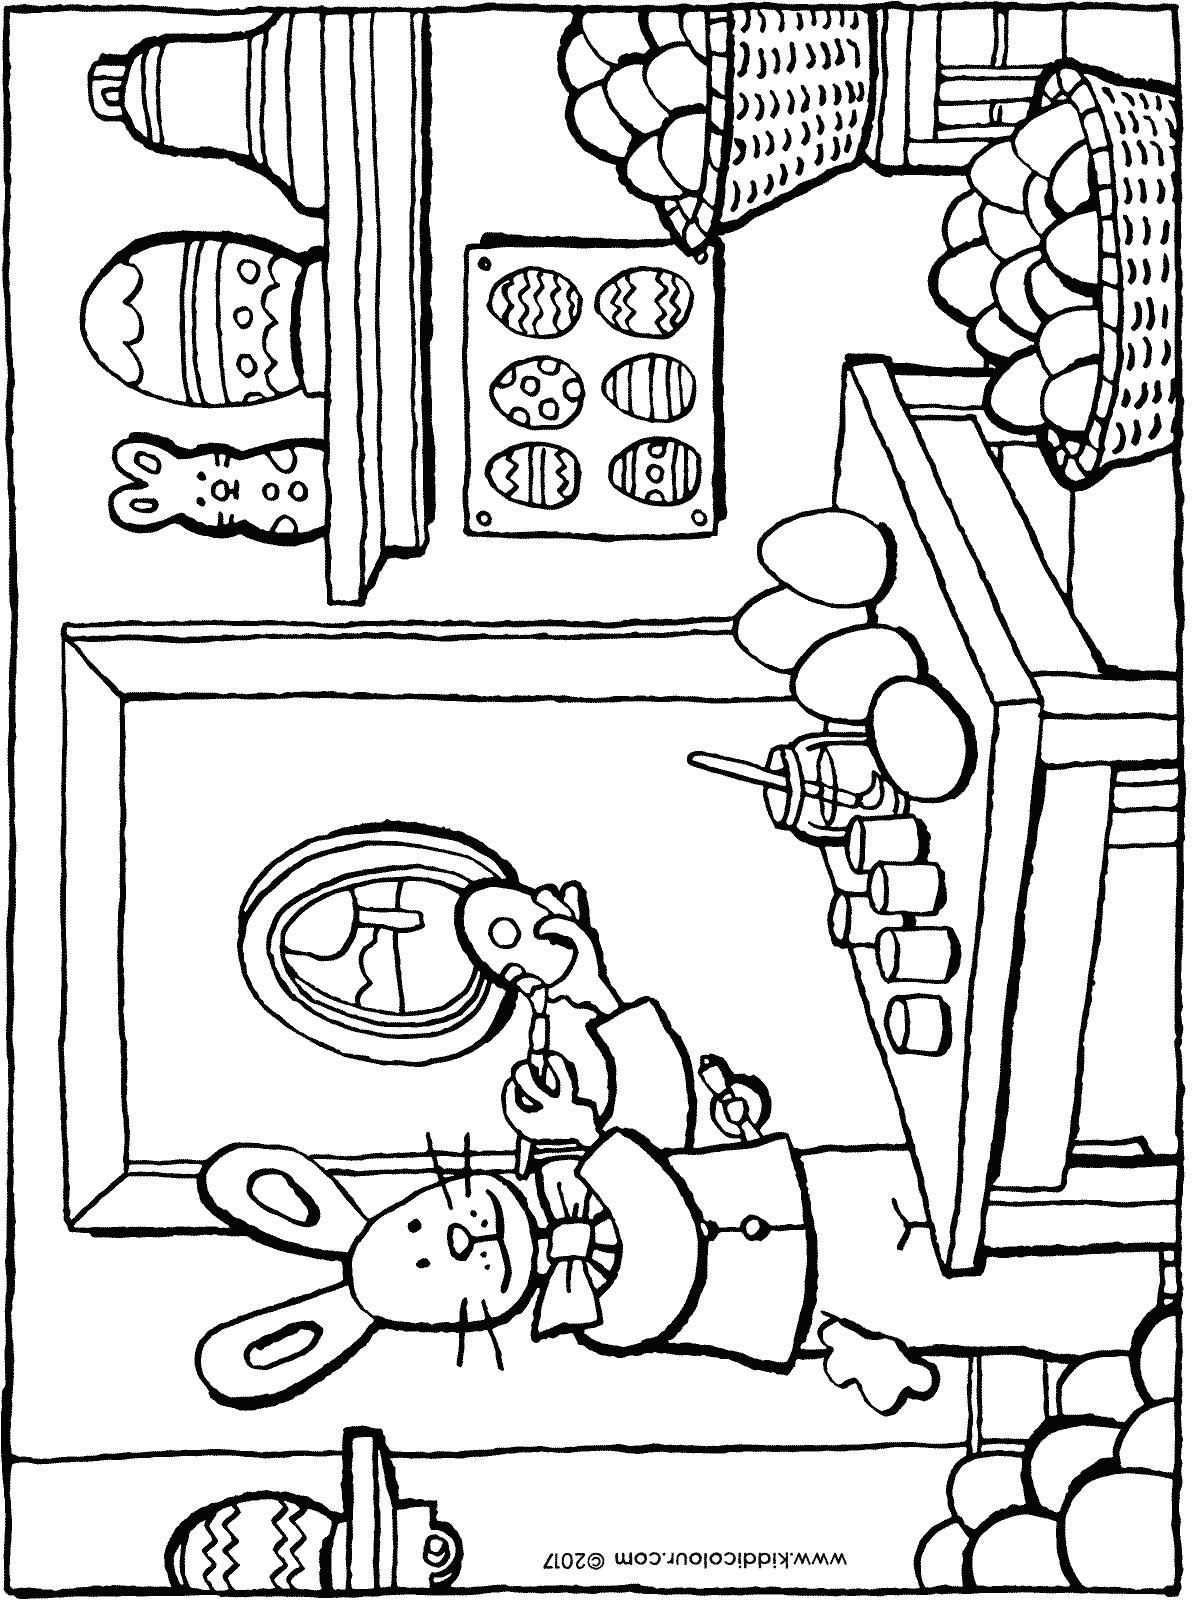 painting Easter eggs colouring page drawing picture 01H